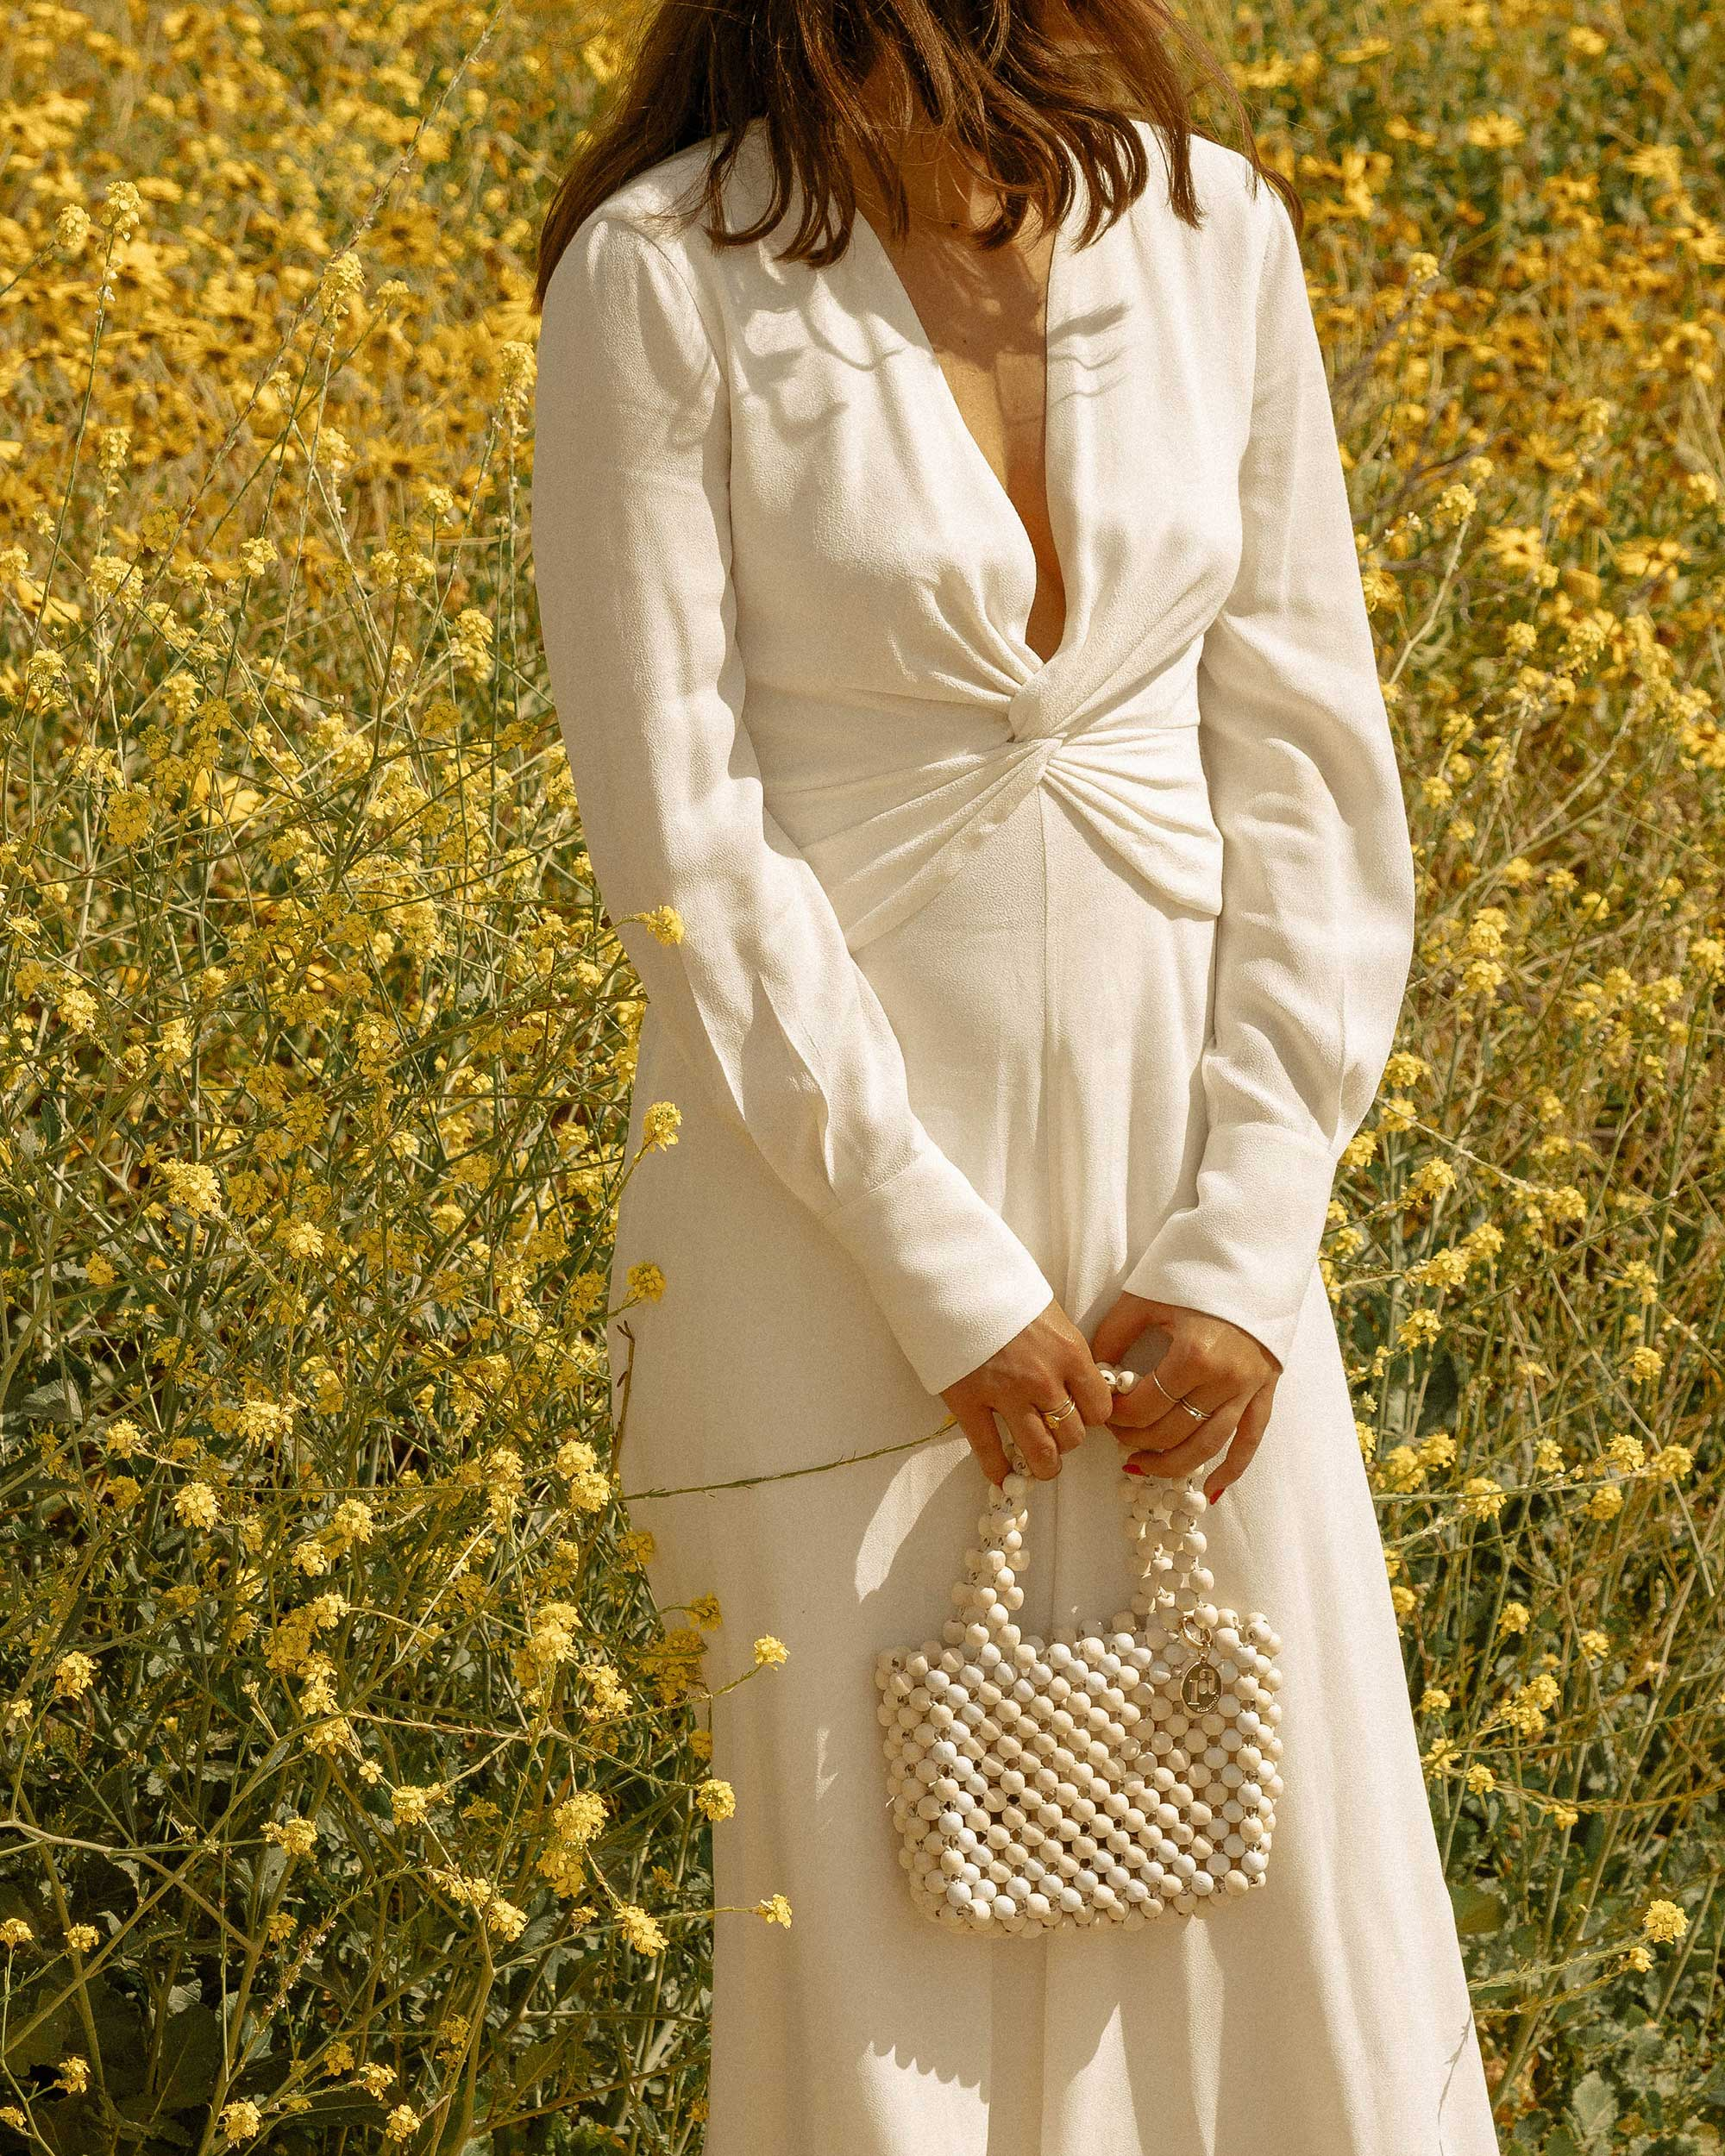 Sarah Butler of Sarah Styles Seattle wears Equipment Faun crepe midi dress in white with a flatteringly knotted front and plunging neckline for the perfect spring outfit   @sarahchristine -6.jpg